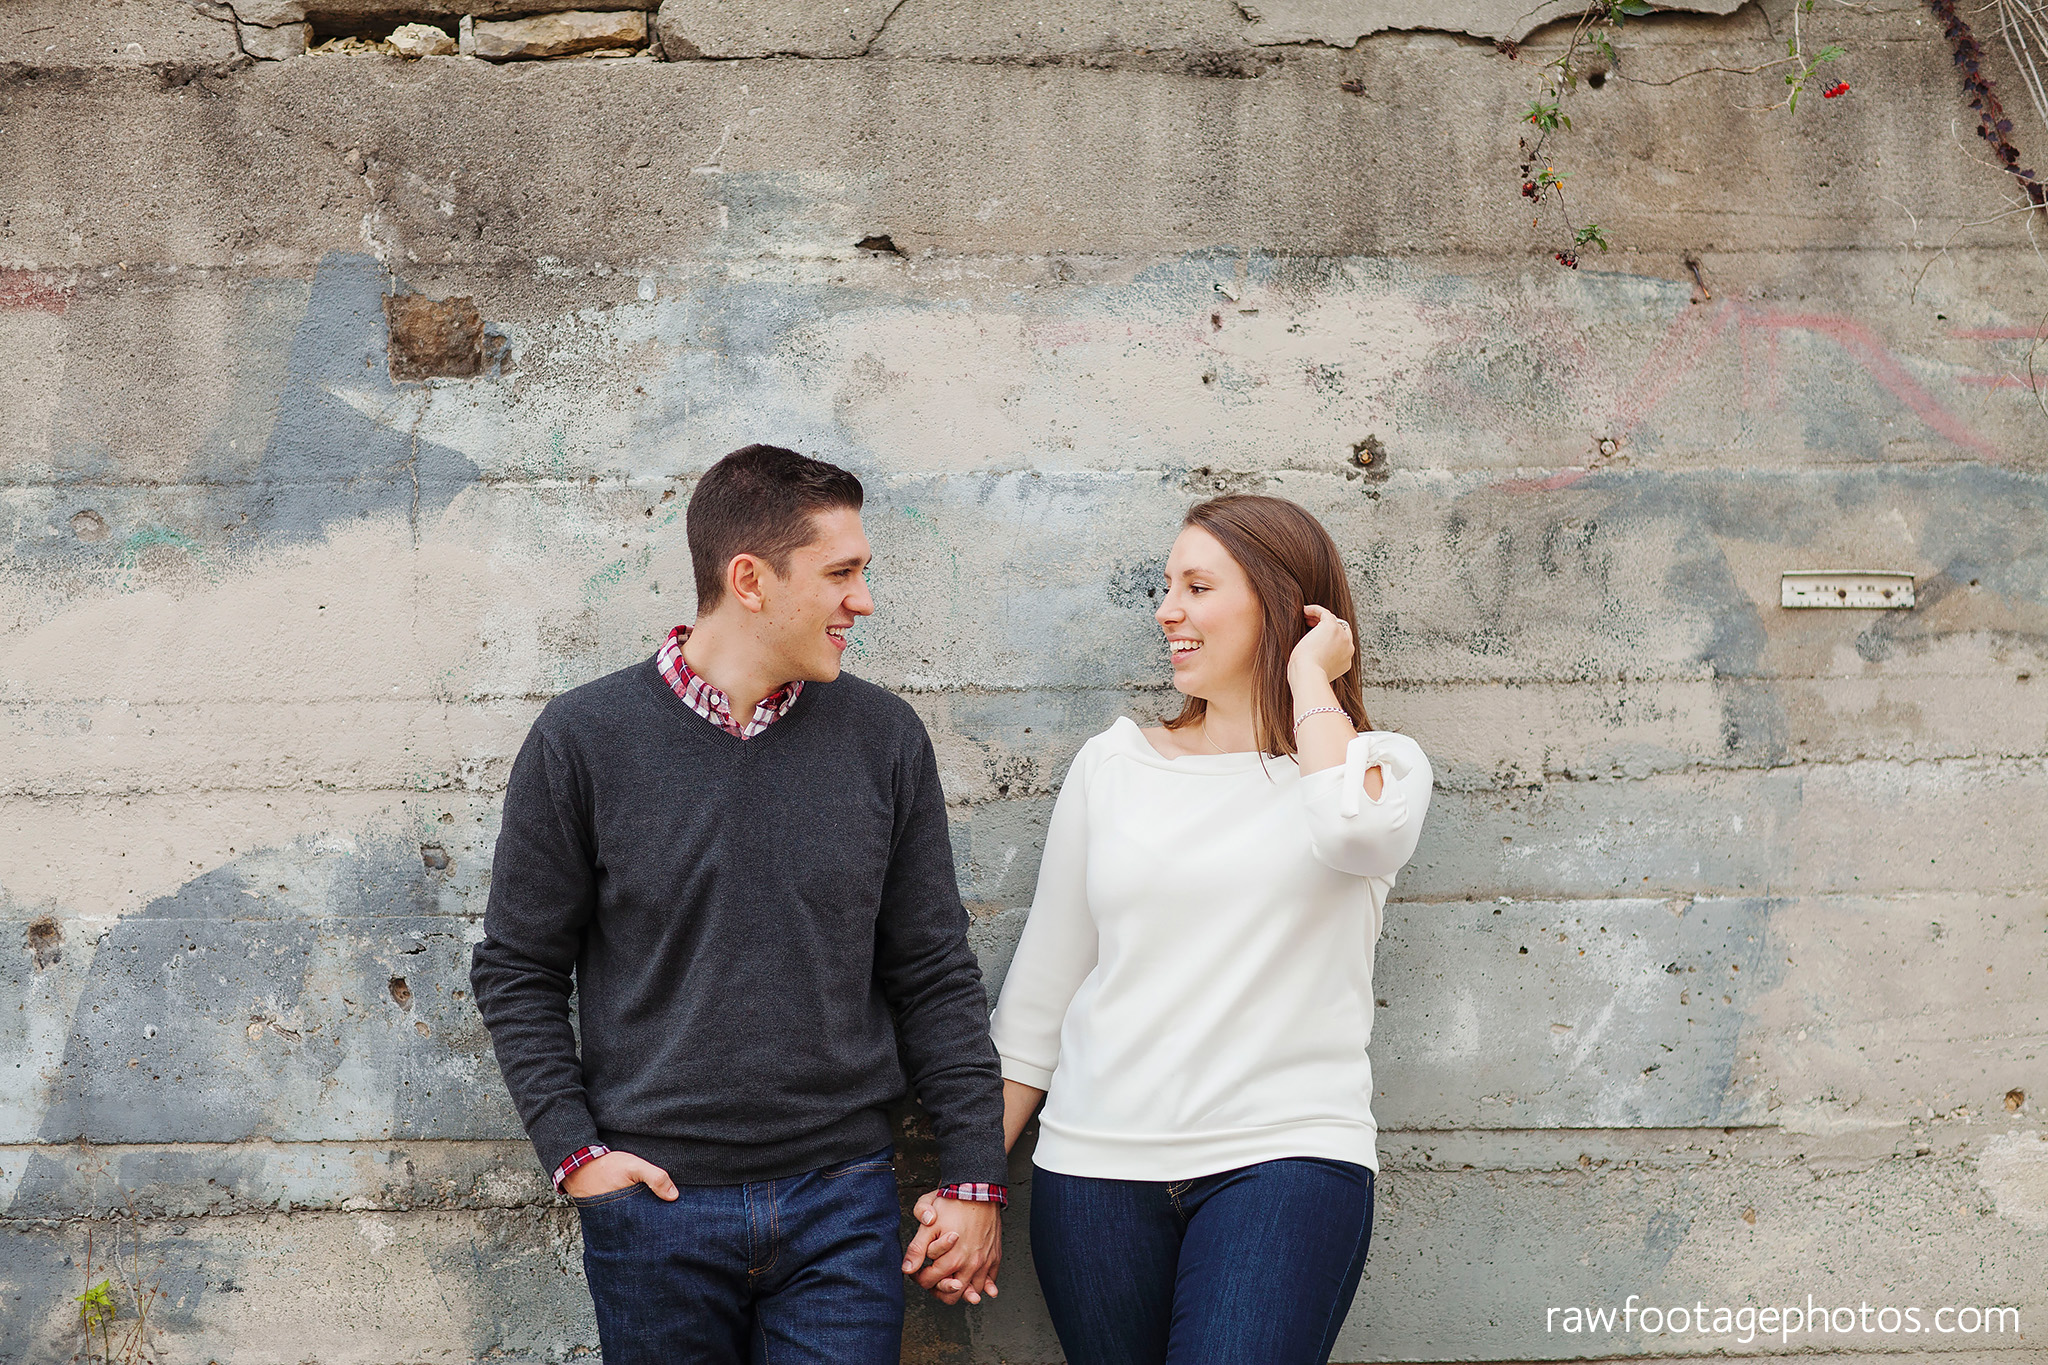 london_ontario_wedding_photographer-downtown_engagement_session-raw_footage_photography010.jpg